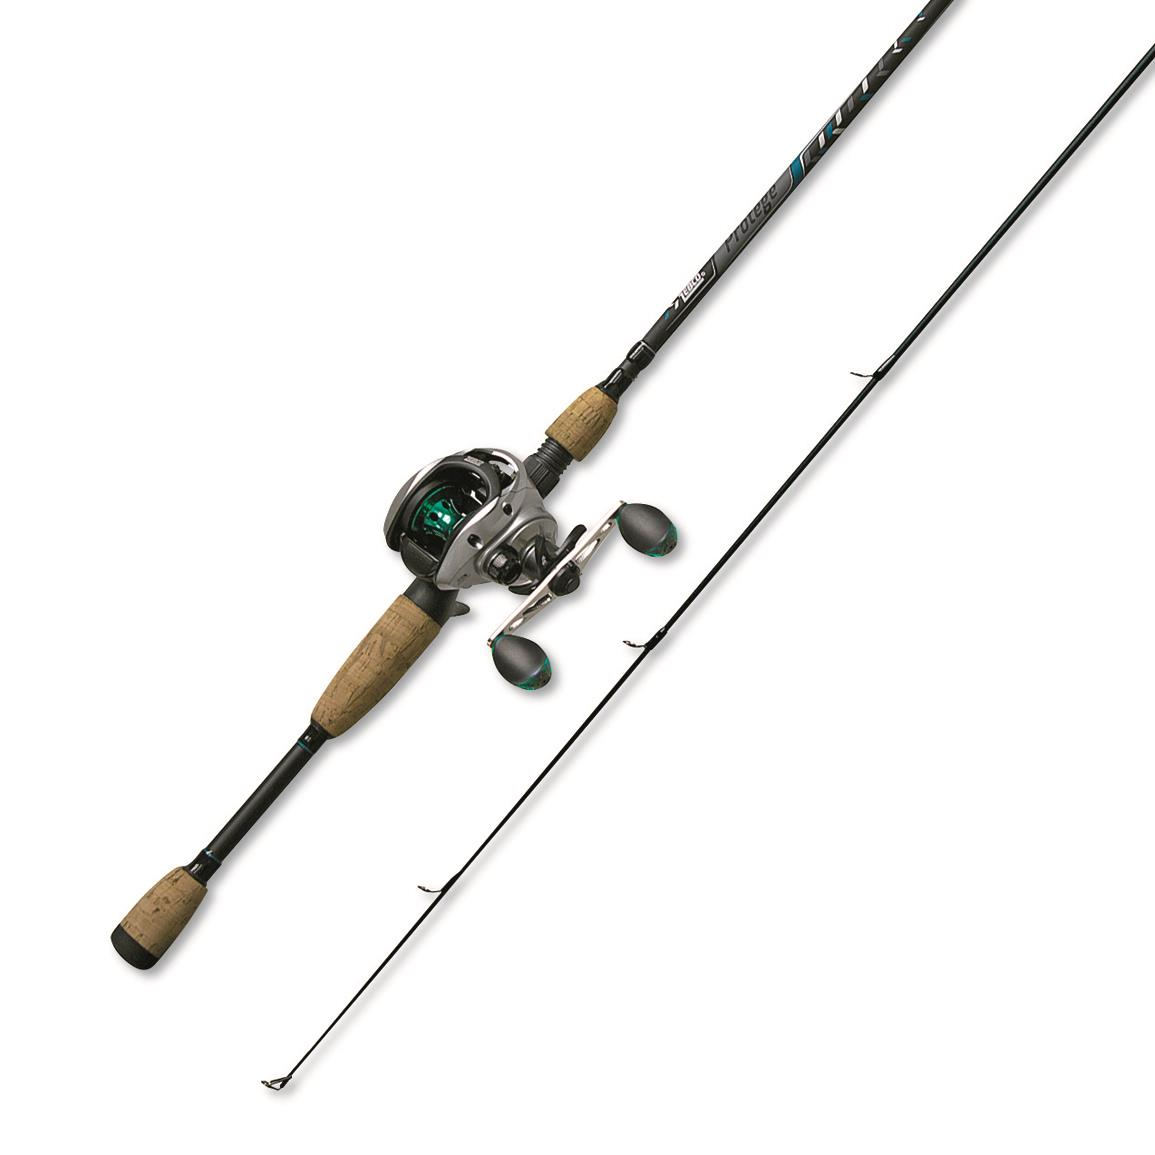 Zebco Protege Baitcasting Rod and Reel Combo